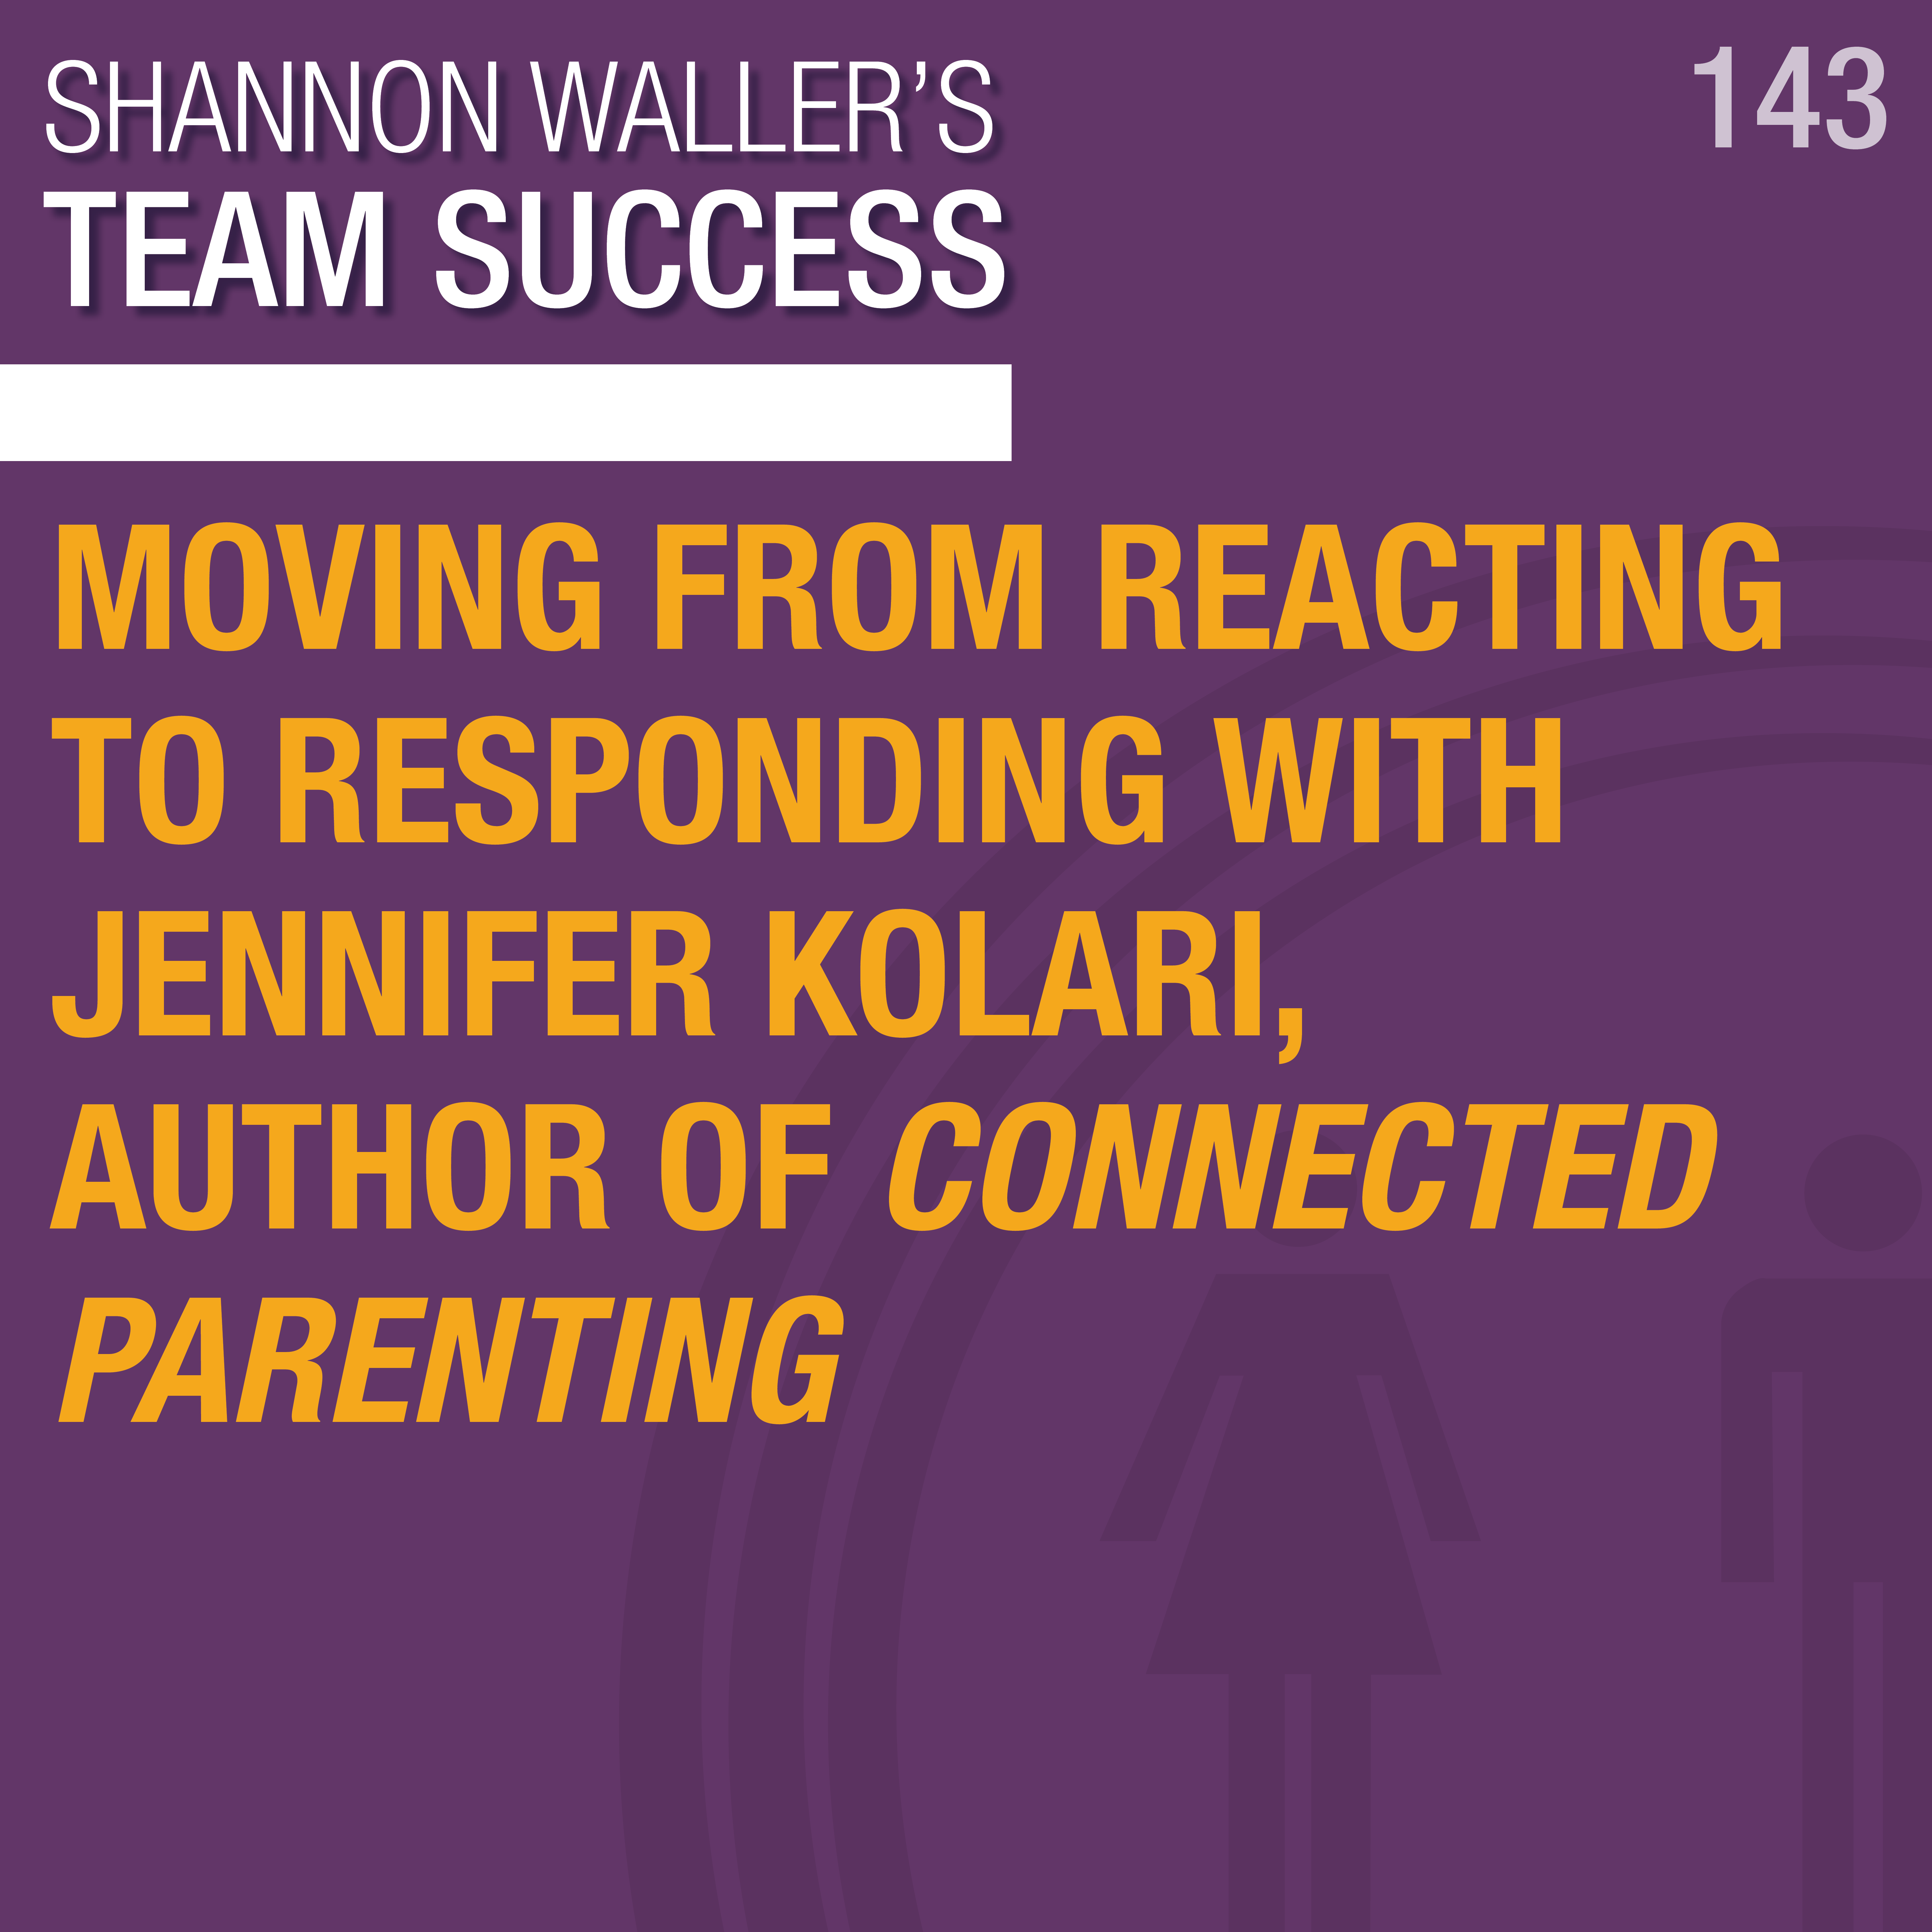 Moving From Reacting To Responding With Jennifer Kolari, Author Of Connected Parenting